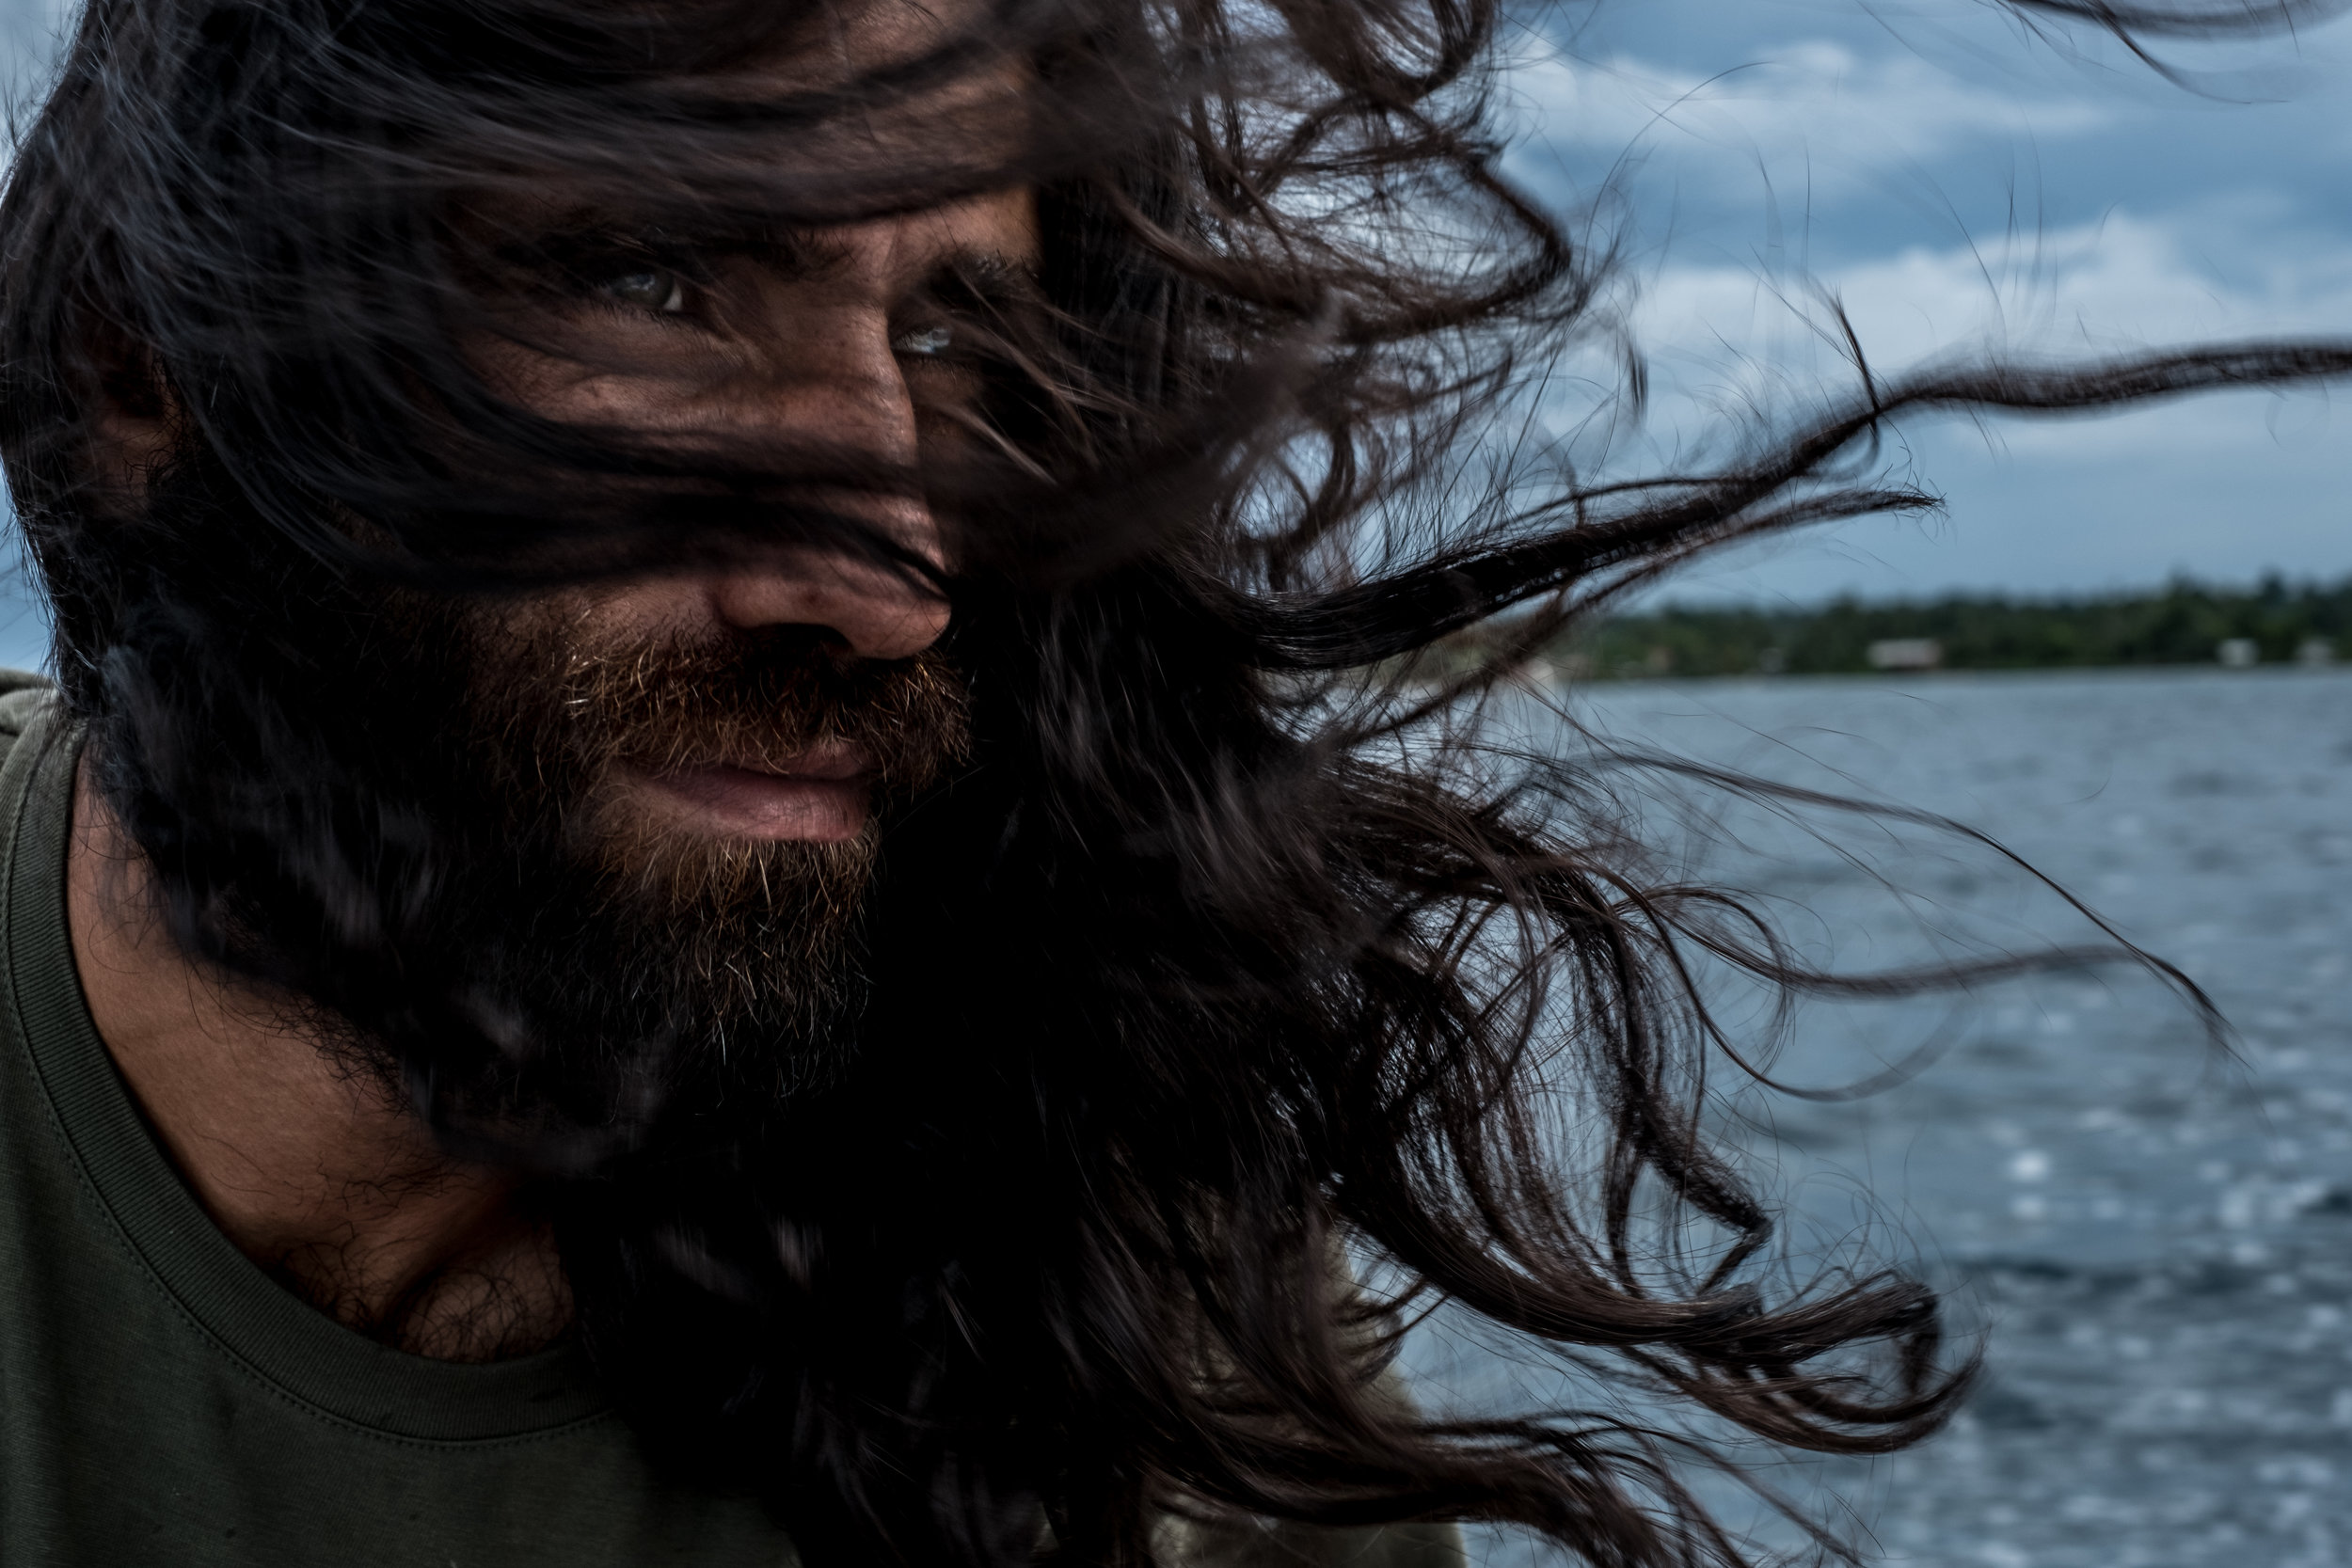 Read:  'This is the deepest form of violence in the world' - interview with Behrouz Boochani    Spex  Credit: Ashley Gilberts